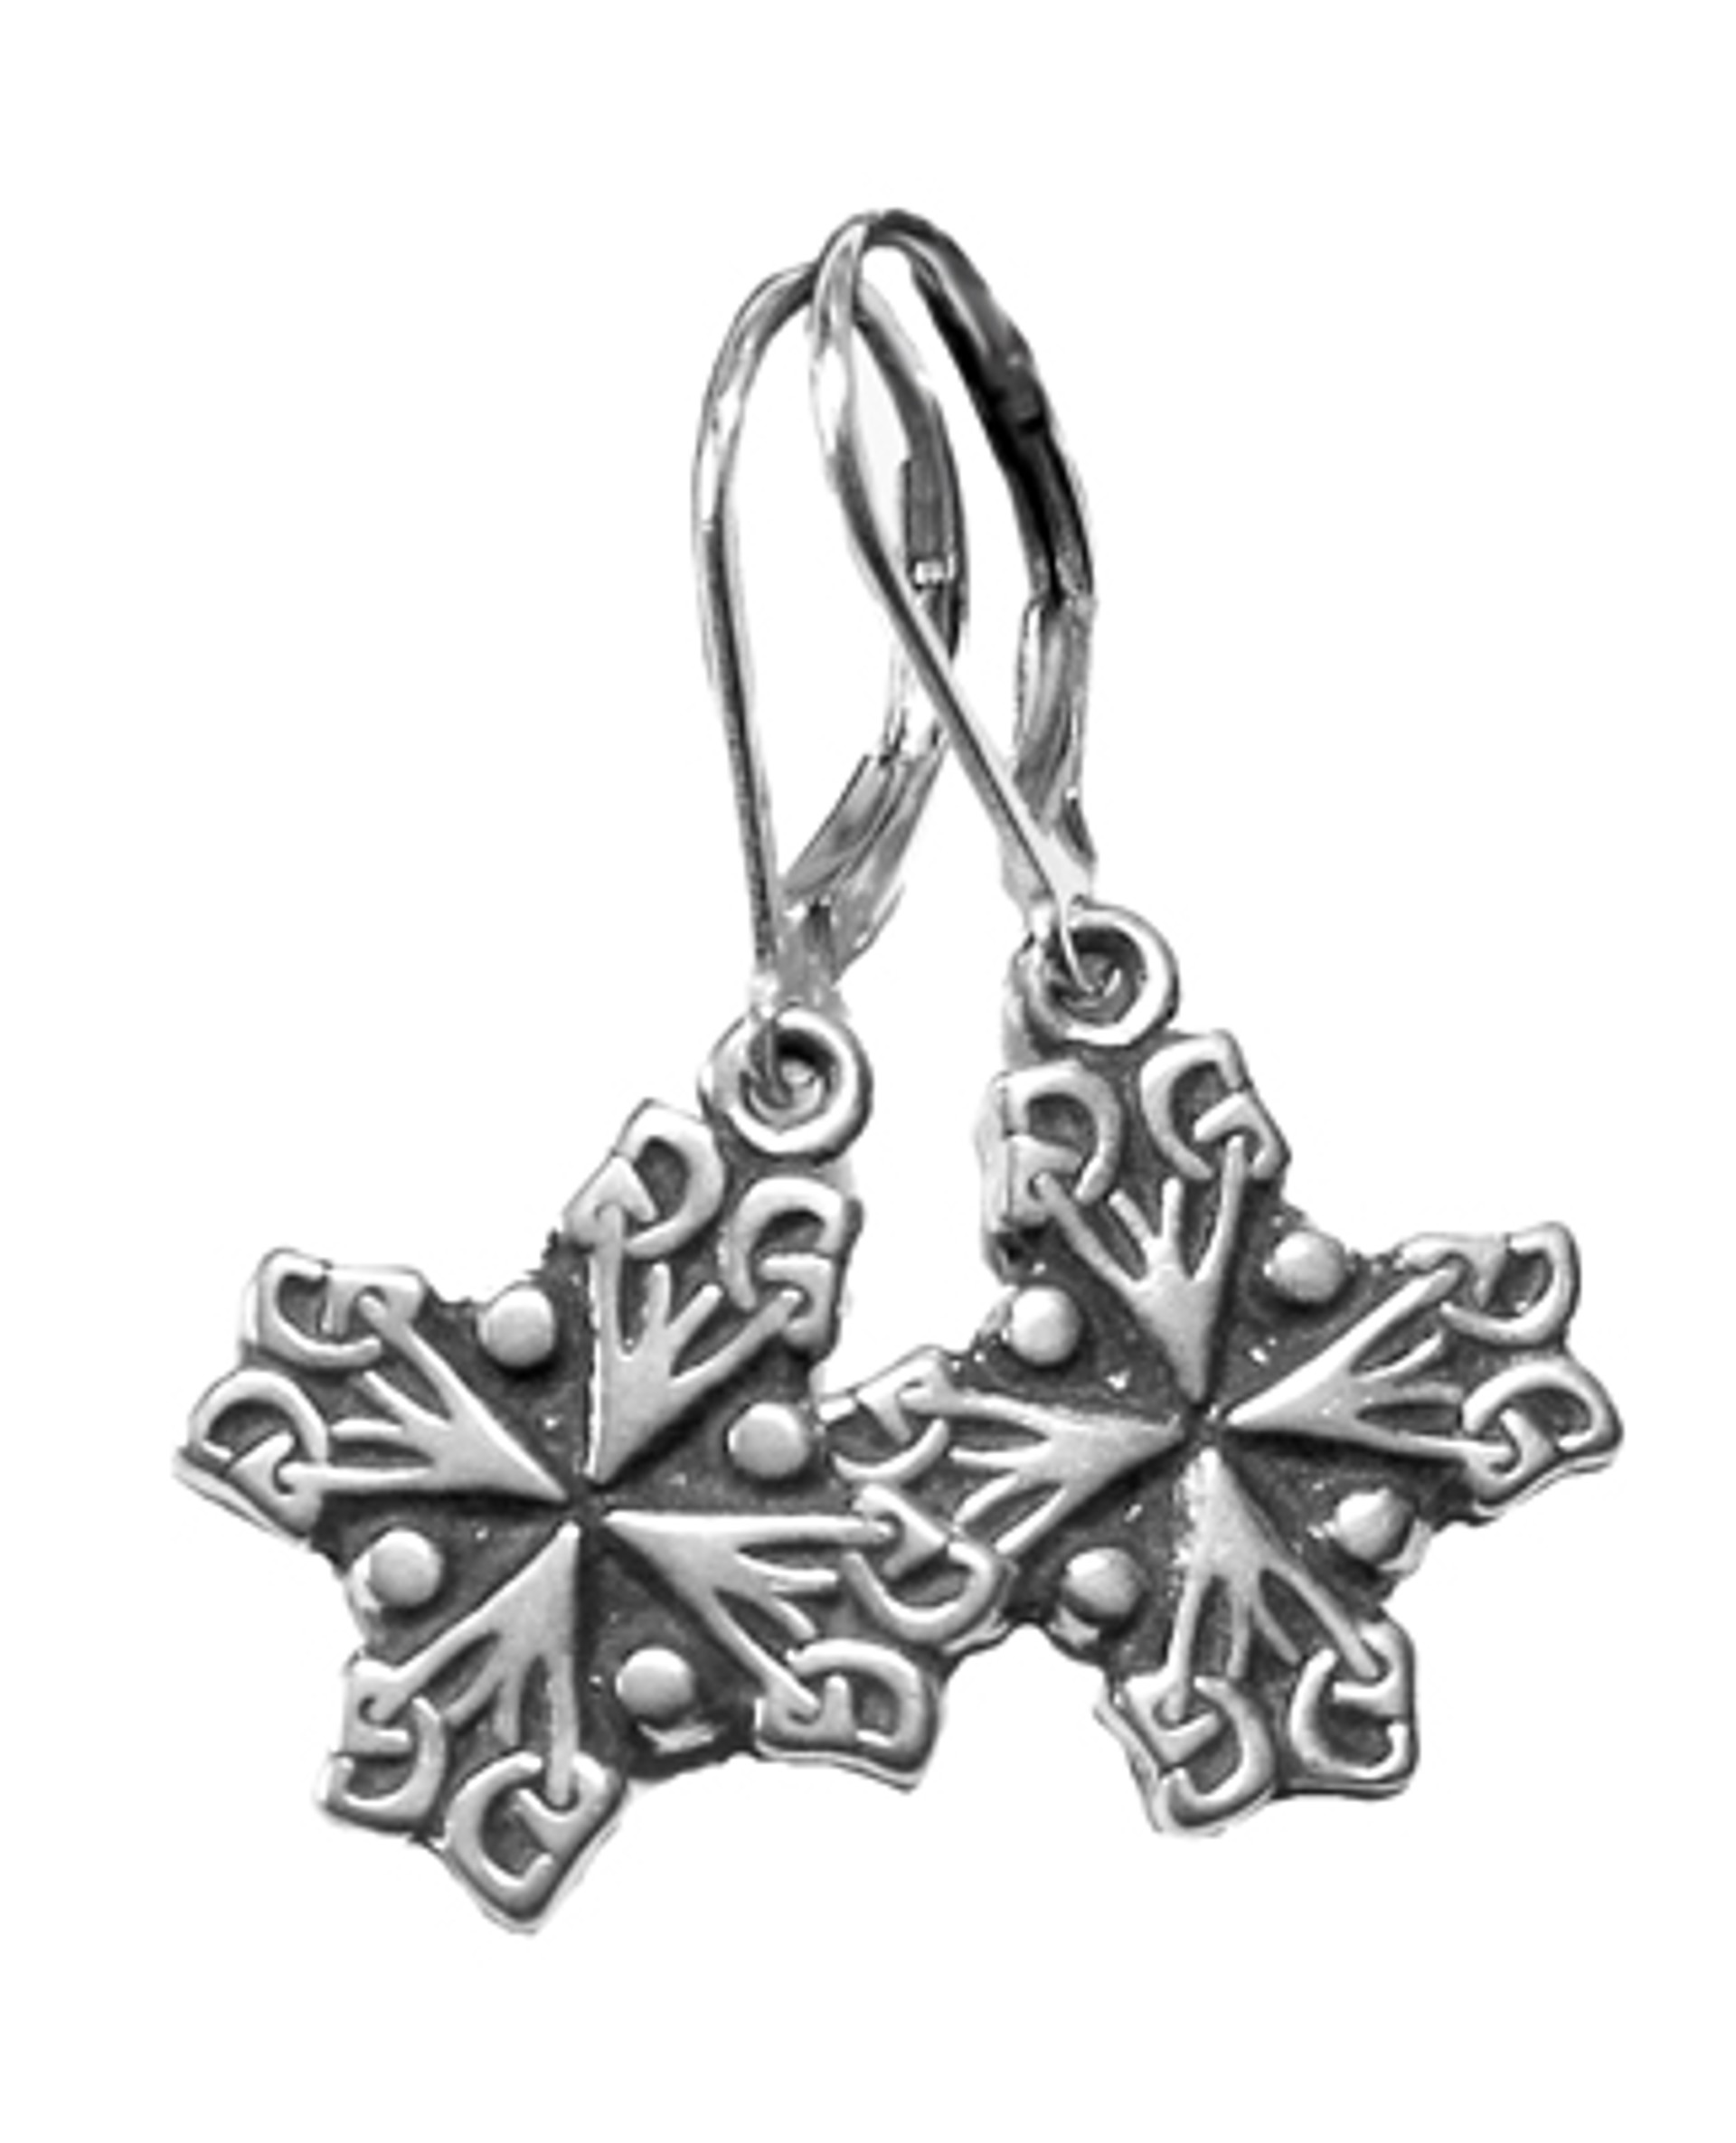 Earrings - St. Jeanne d'Arc Cross - 7343 by Deanne McKeown